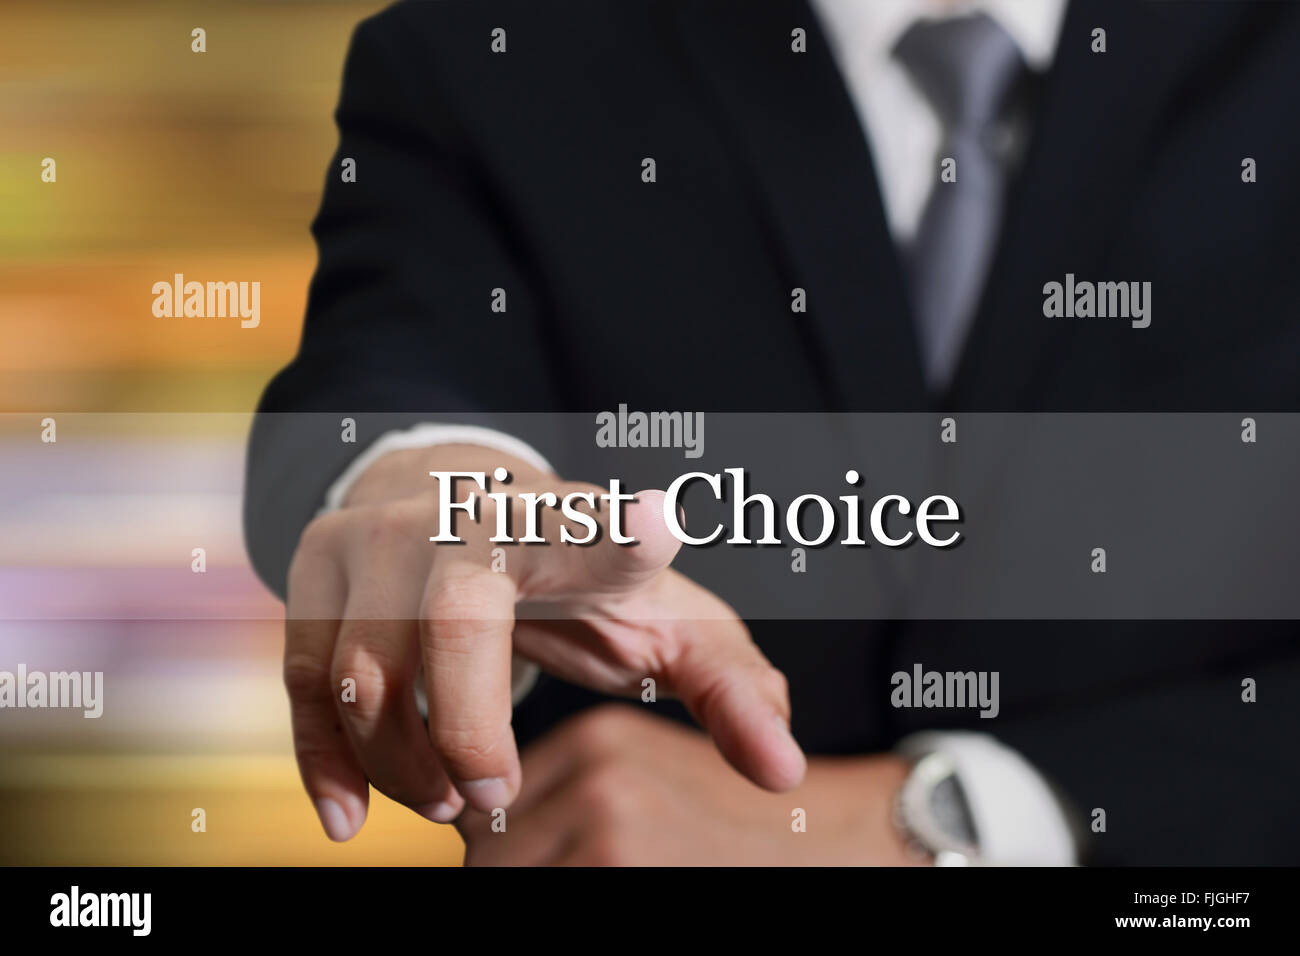 Businessman hand touching First Choice sign on virtual screen as Good Options concept. - Stock Image